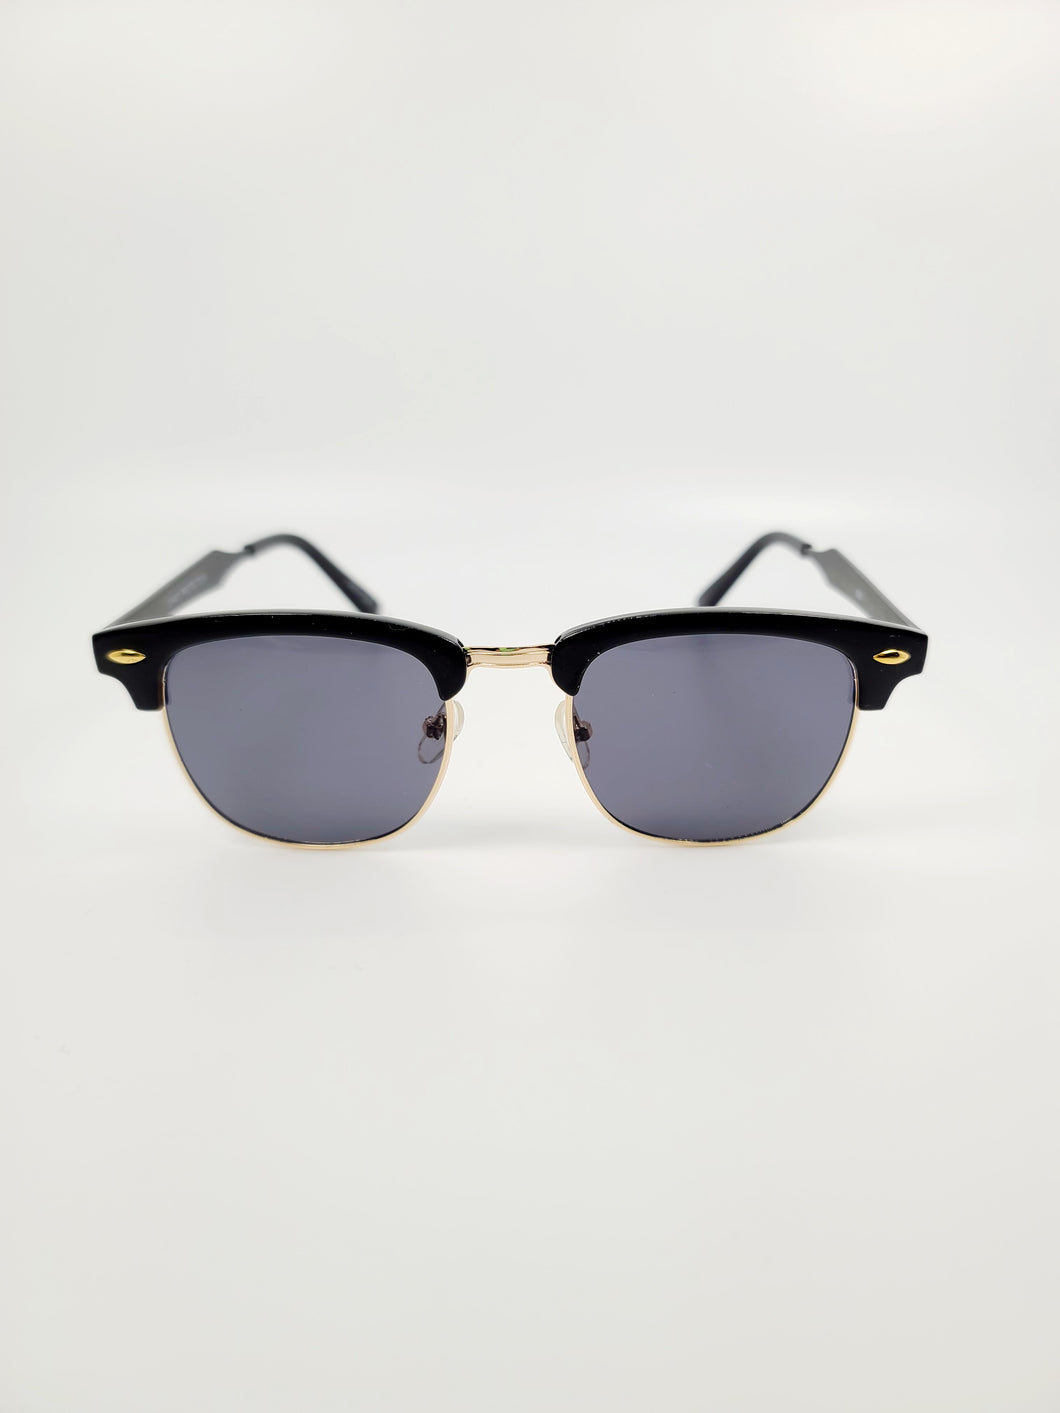 black top frame detail gray lens sunglasses